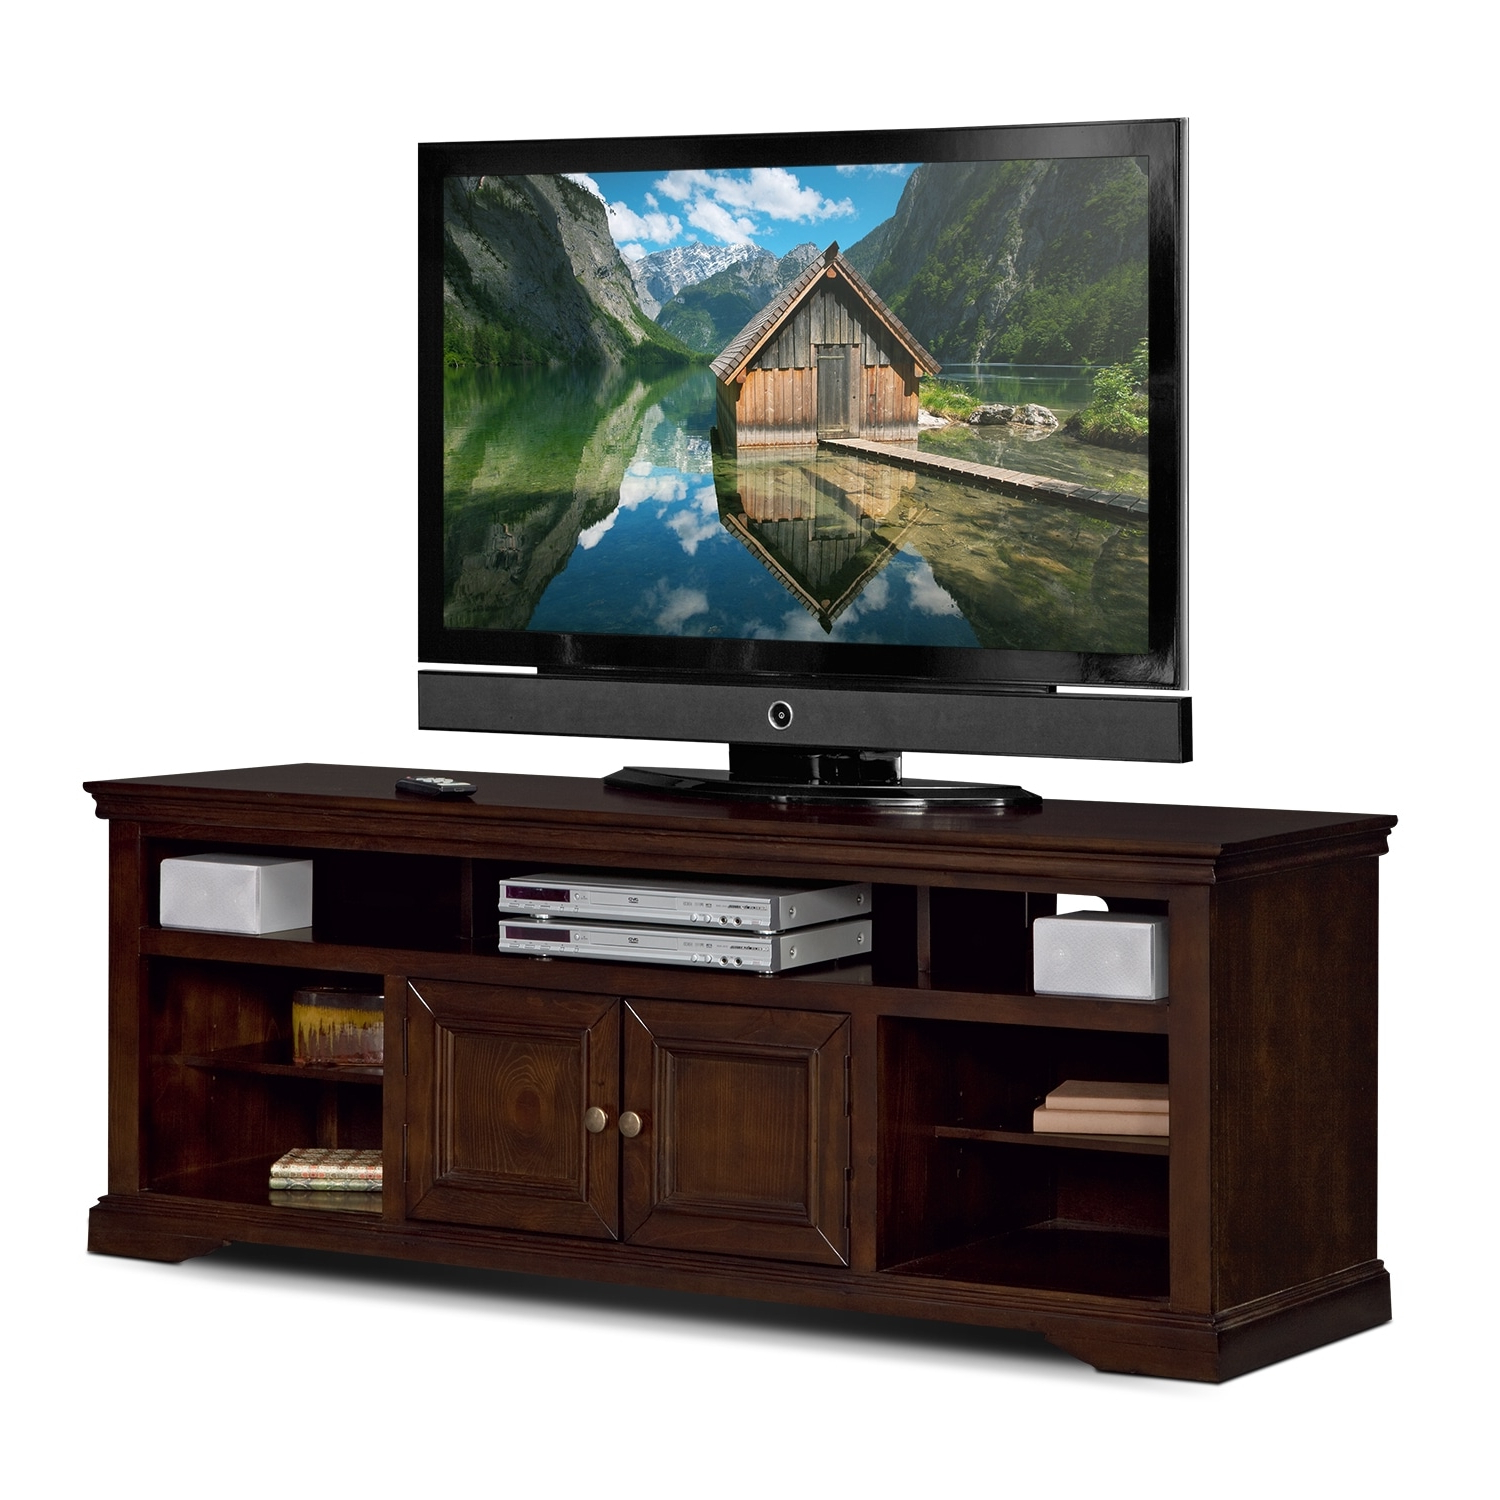 Value City Furniture And Mattresses Throughout Famous Cherry Wood Tv Stands (View 16 of 20)